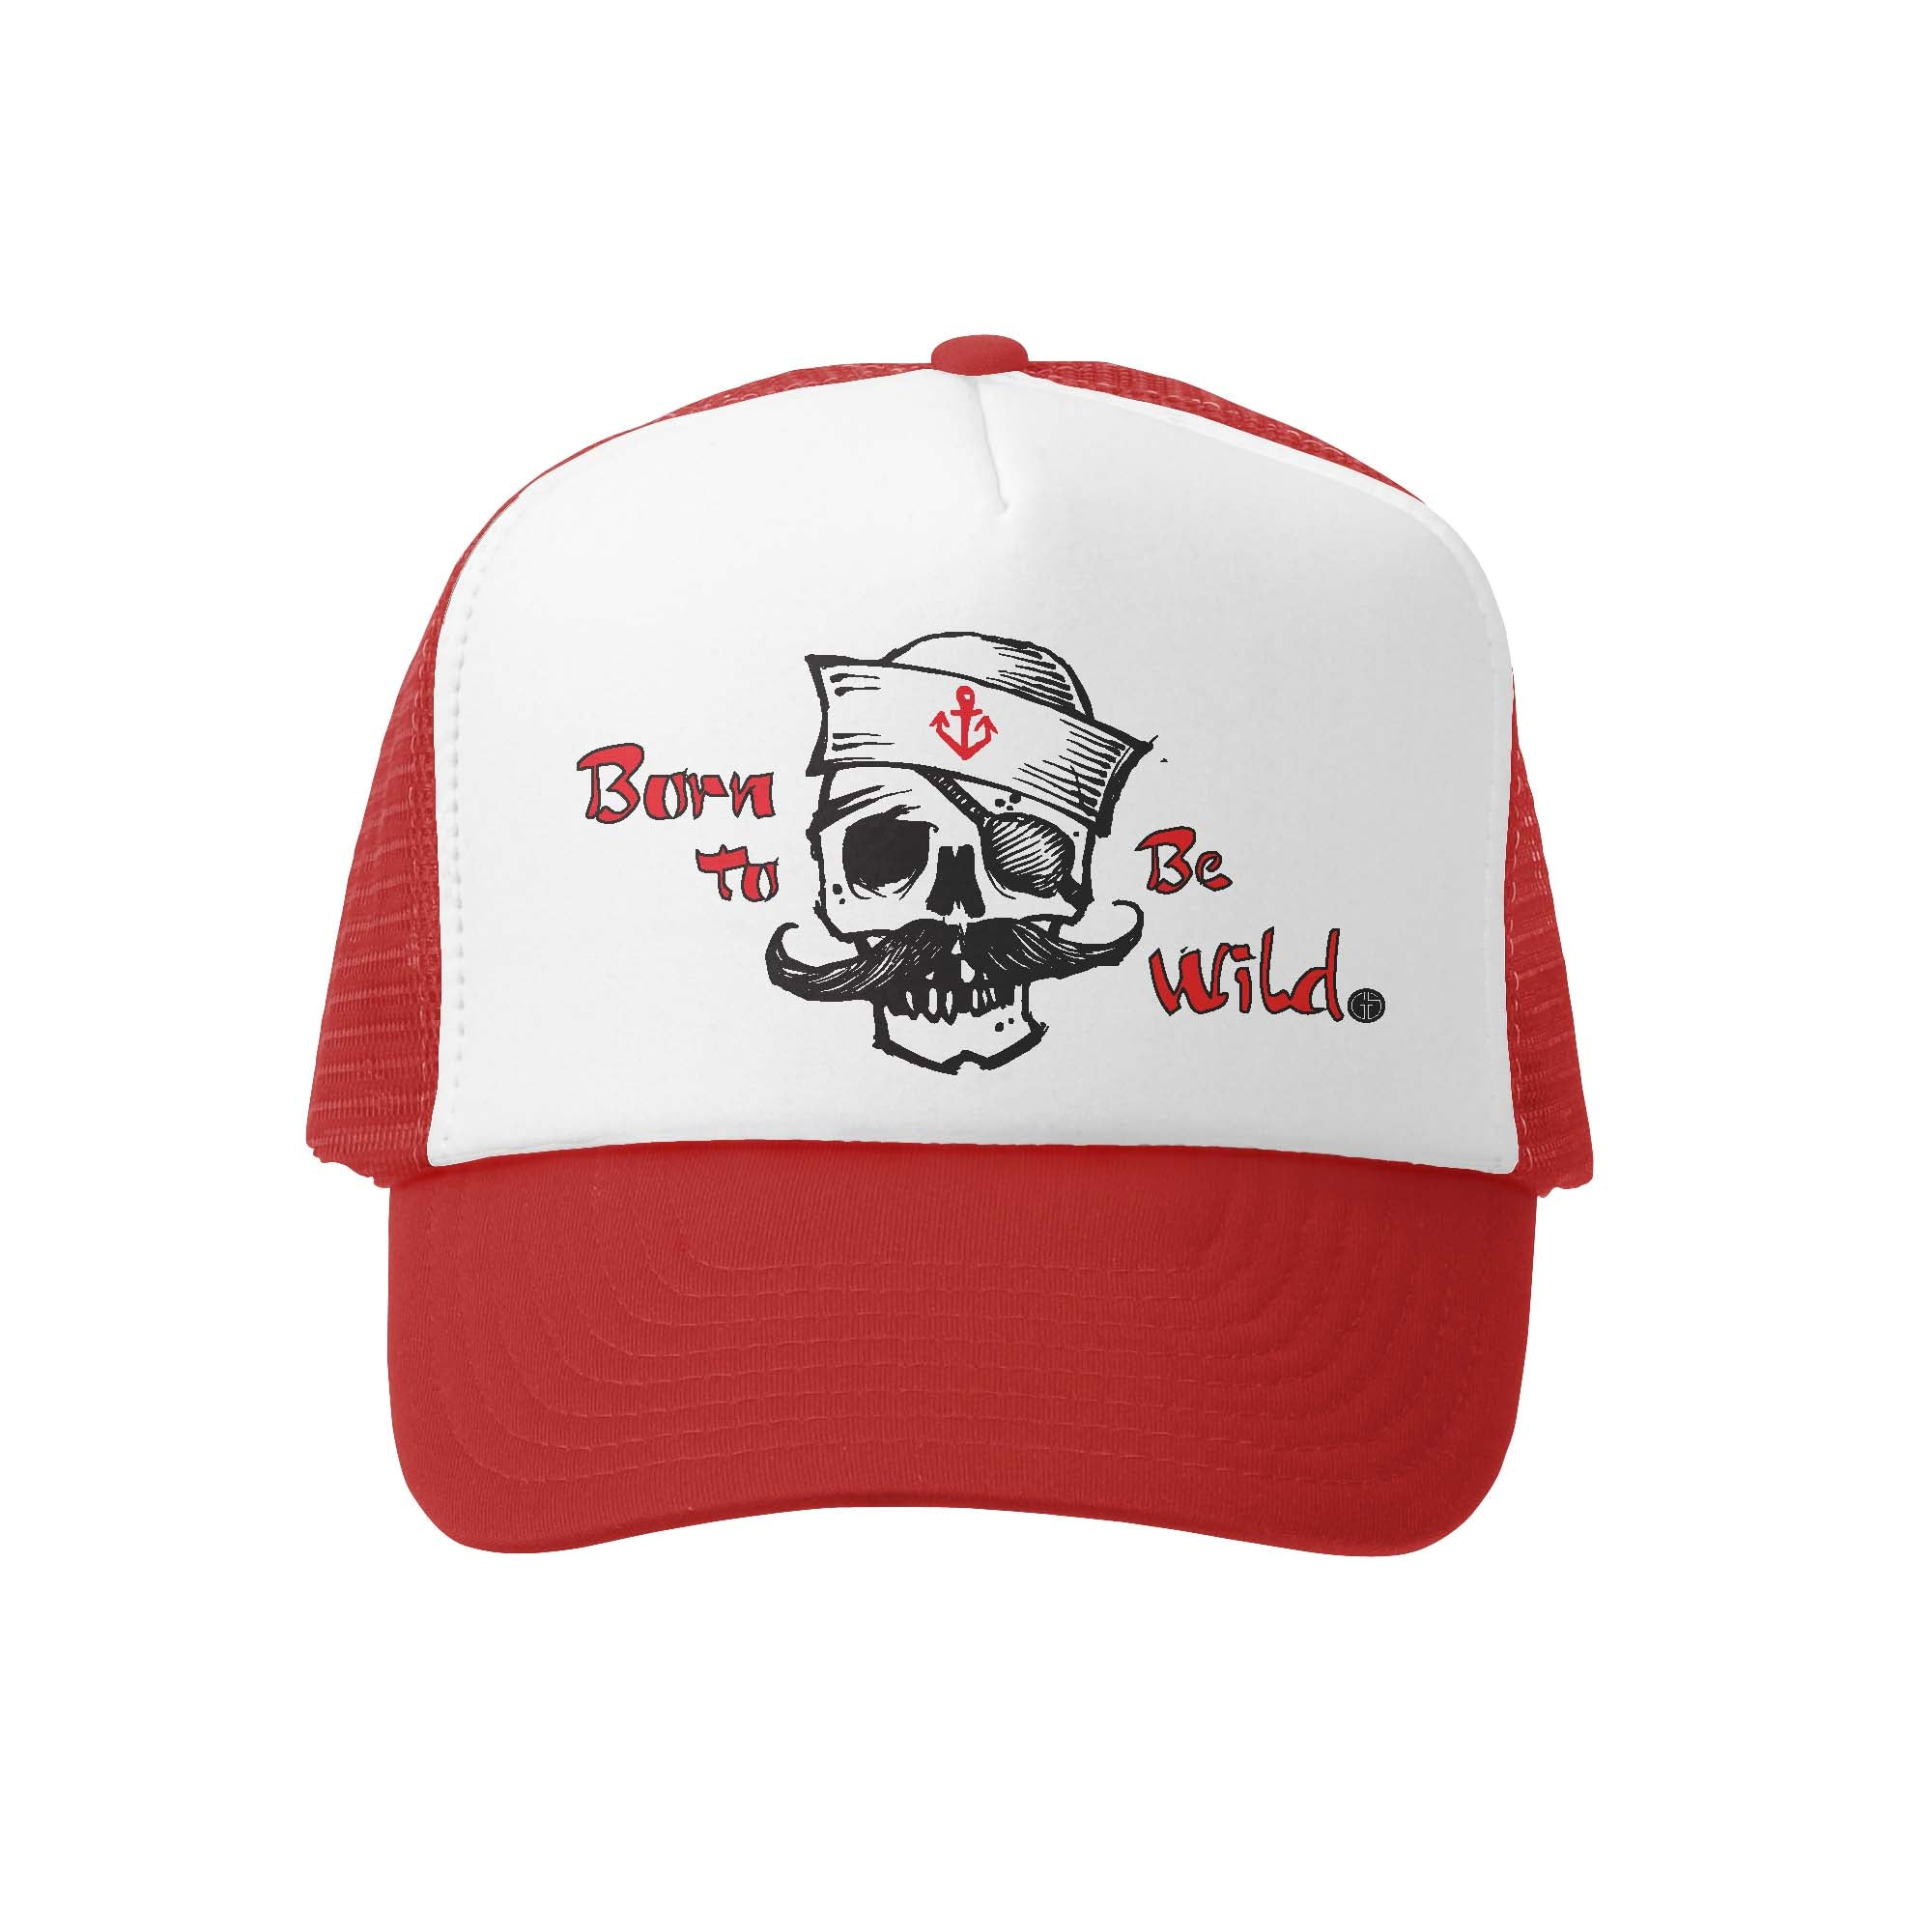 Grom Squad - Hats - Earth Baby Boutique c5b10521695